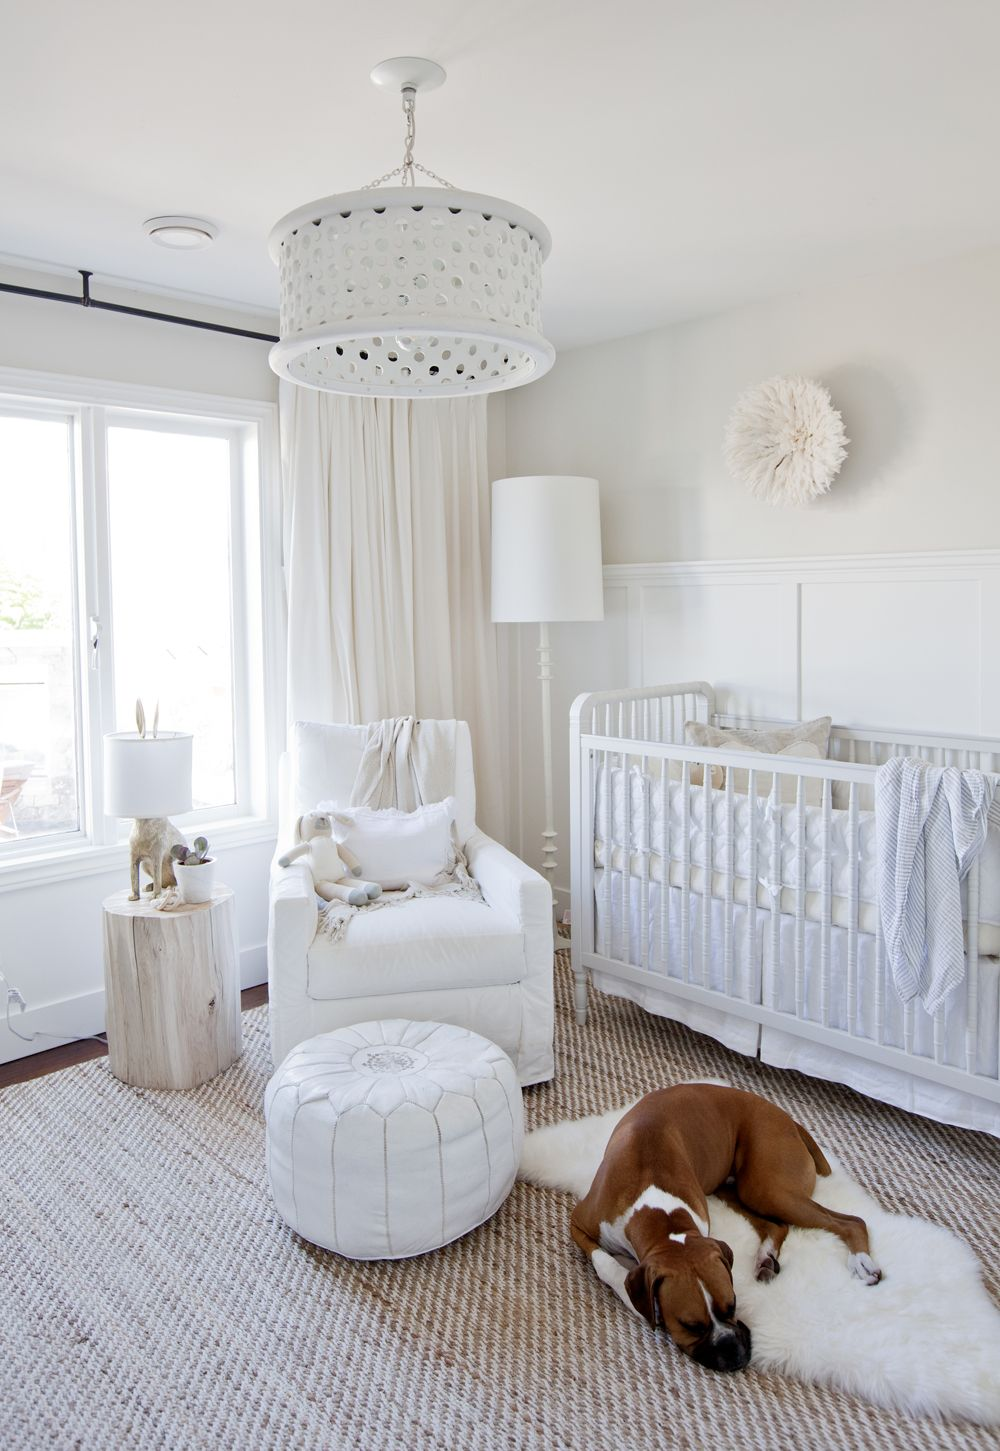 I Have Been So Excited To Reveal Leo S Kelowna Nursery What Call A Sanctuary With You When Was First Designing His The From